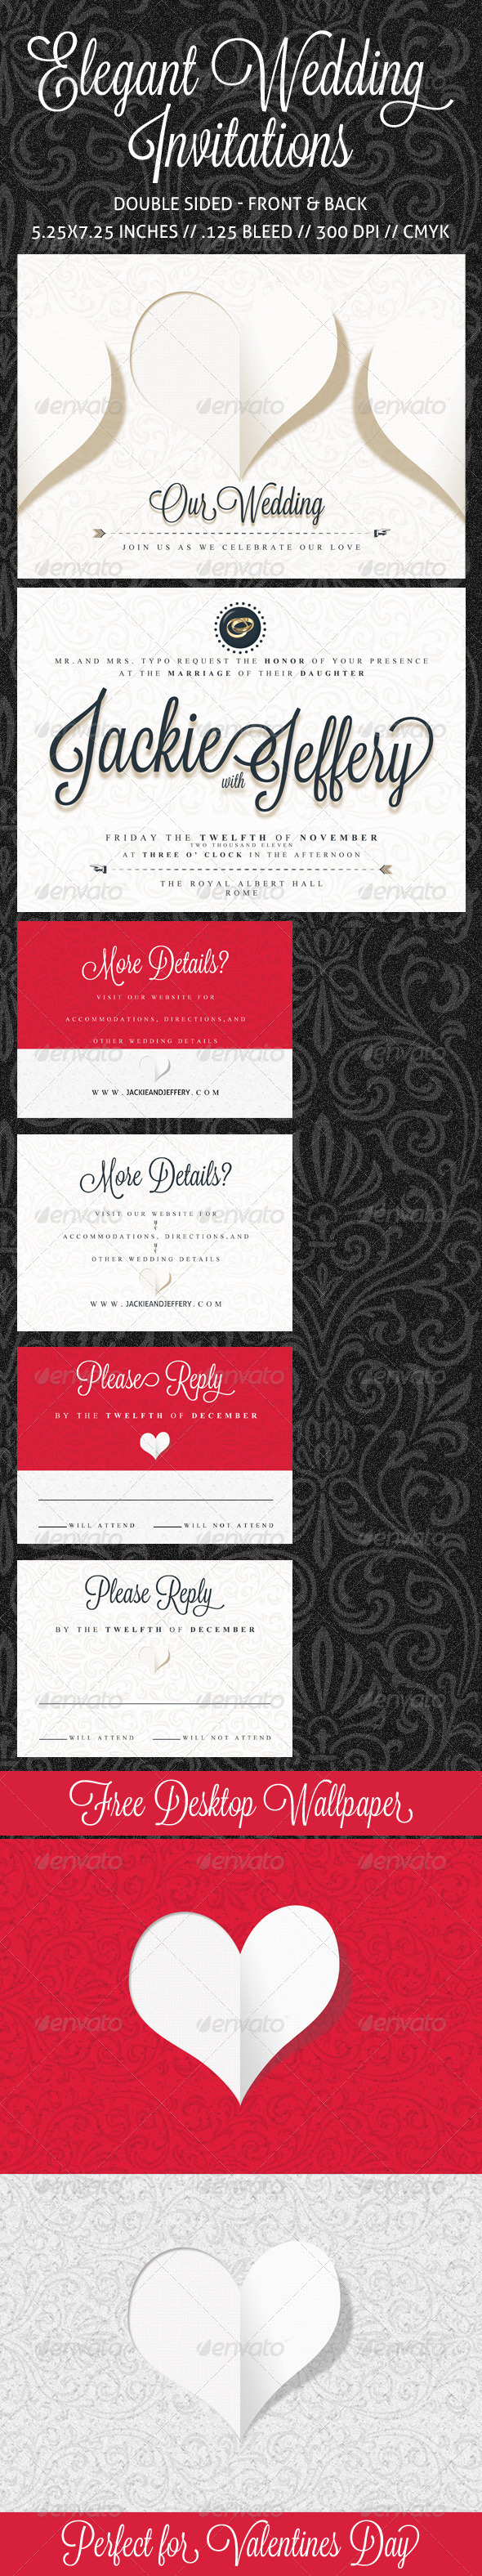 Elegant Wedding Invitation, RSVP and Info Card - Weddings Cards & Invites